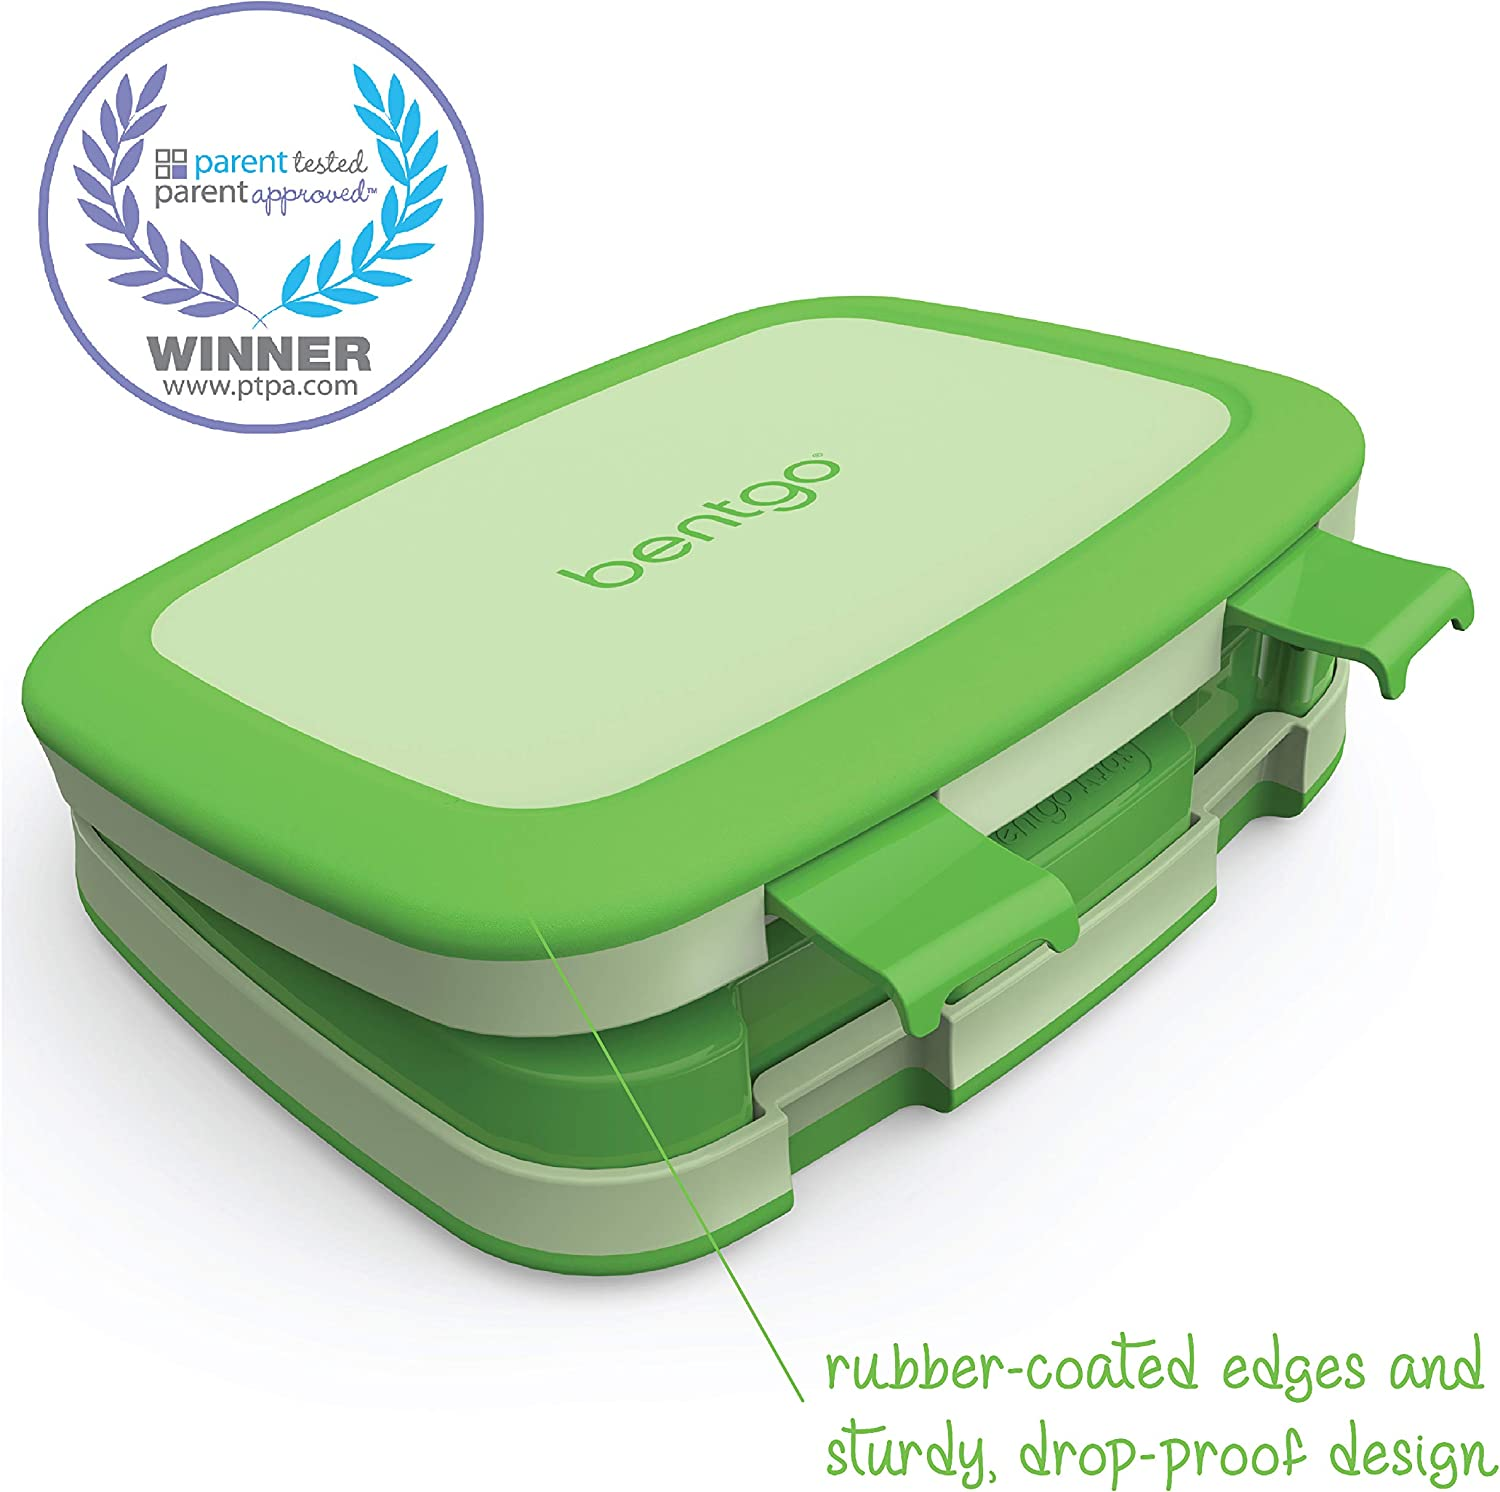 Bentgo Kids Childrens Lunch Box - Bento-Styled Lunch Solution Offers Durable, Leak-Proof, On-the-Go Meal and Snack Packing (Green)